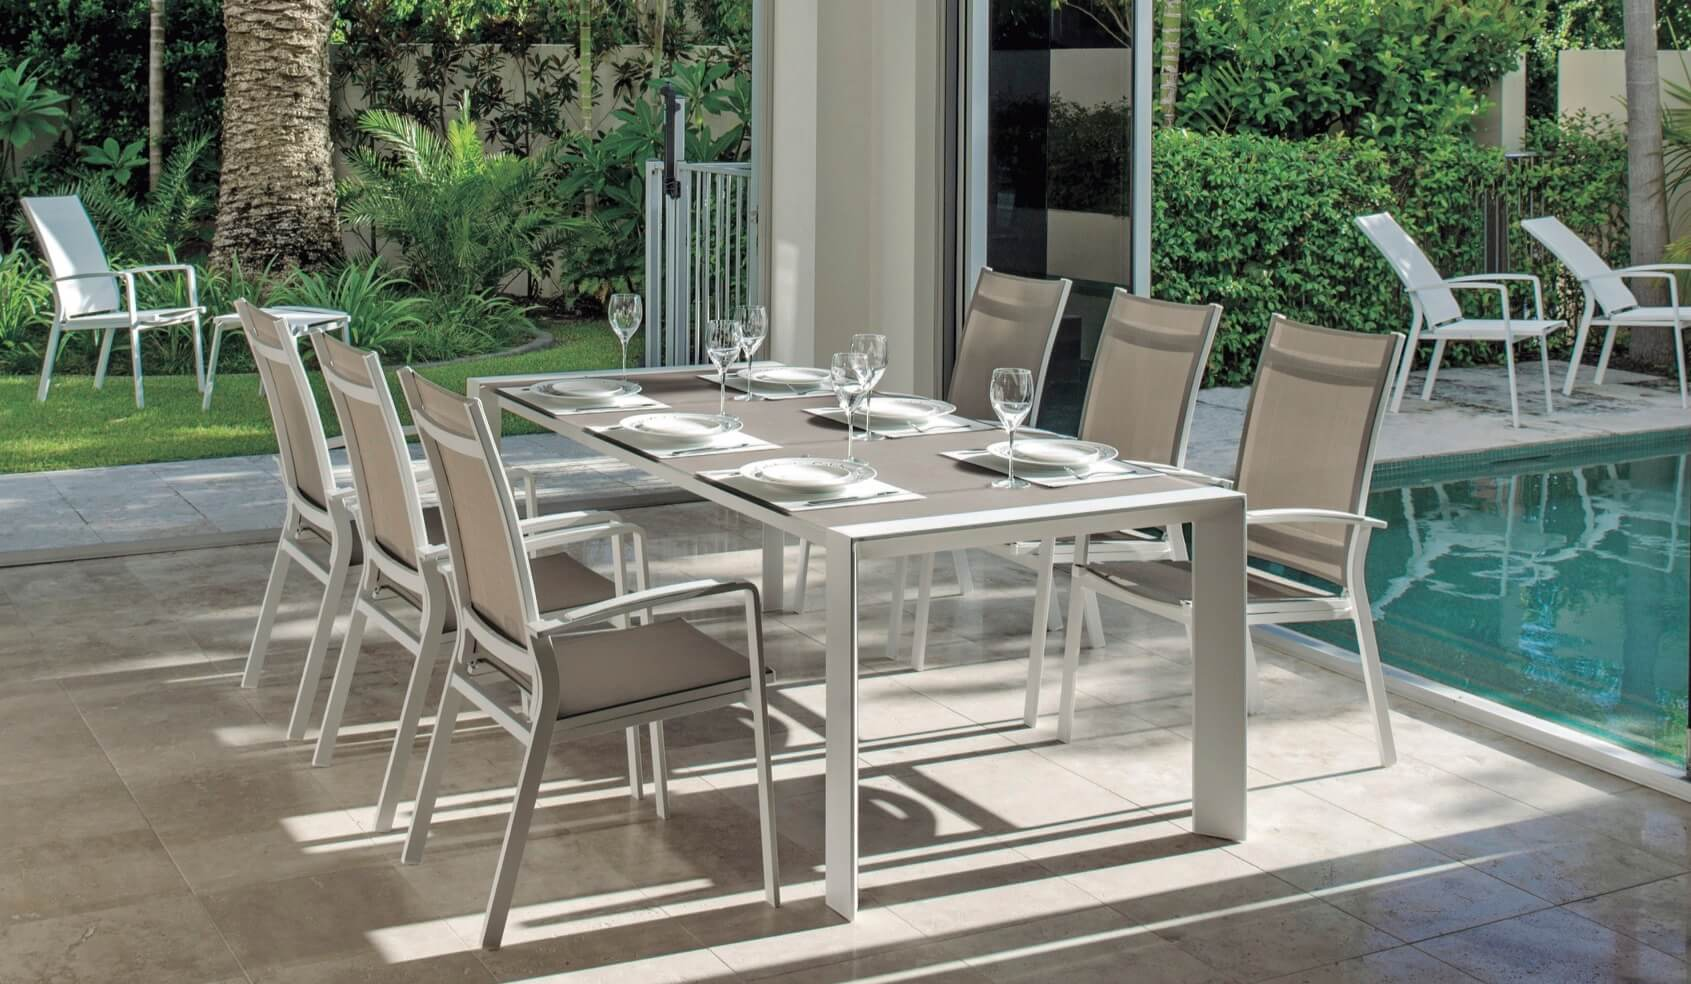 Outdoor Dining Table Designs 8